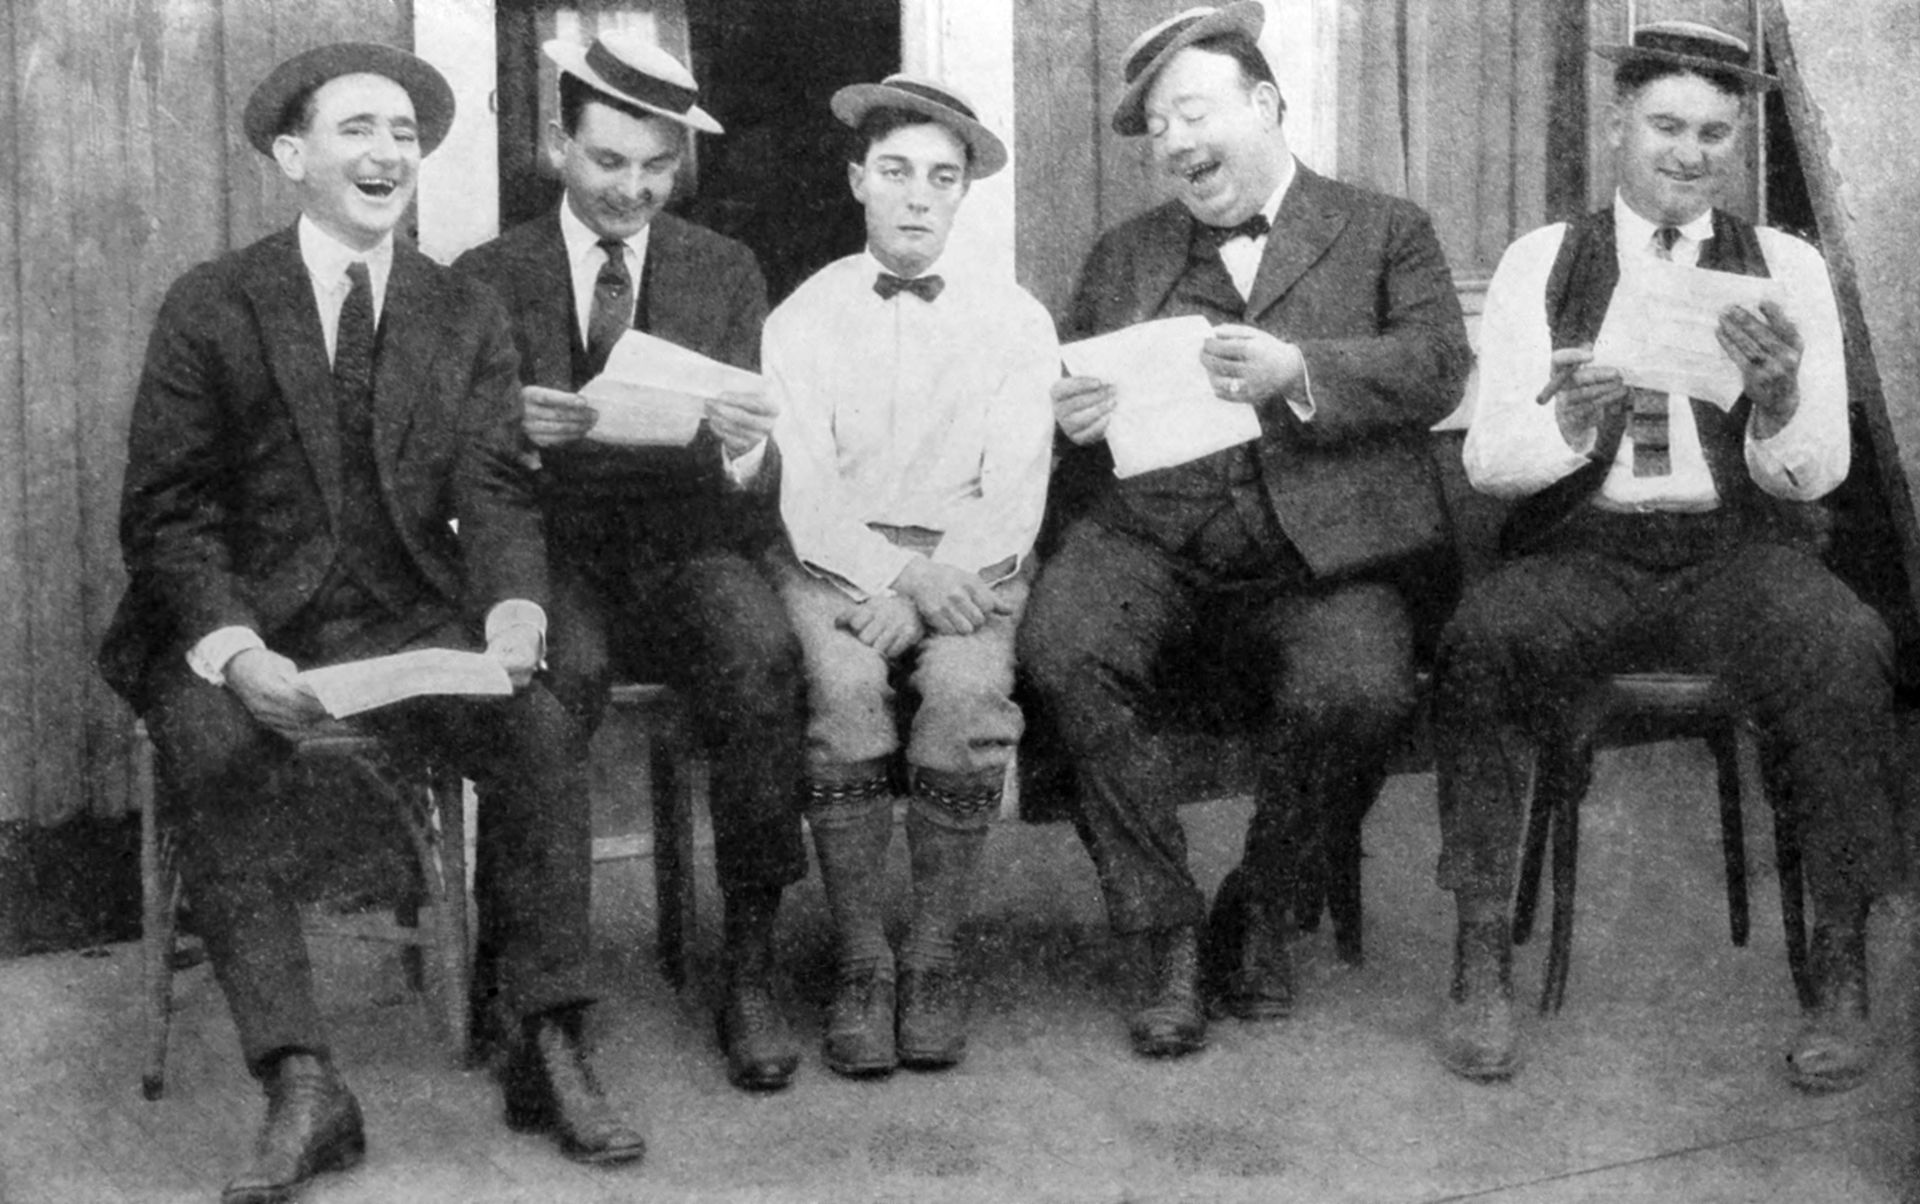 Buster Keaton and his writers in 1923. I Image: Wikimedia Commons.